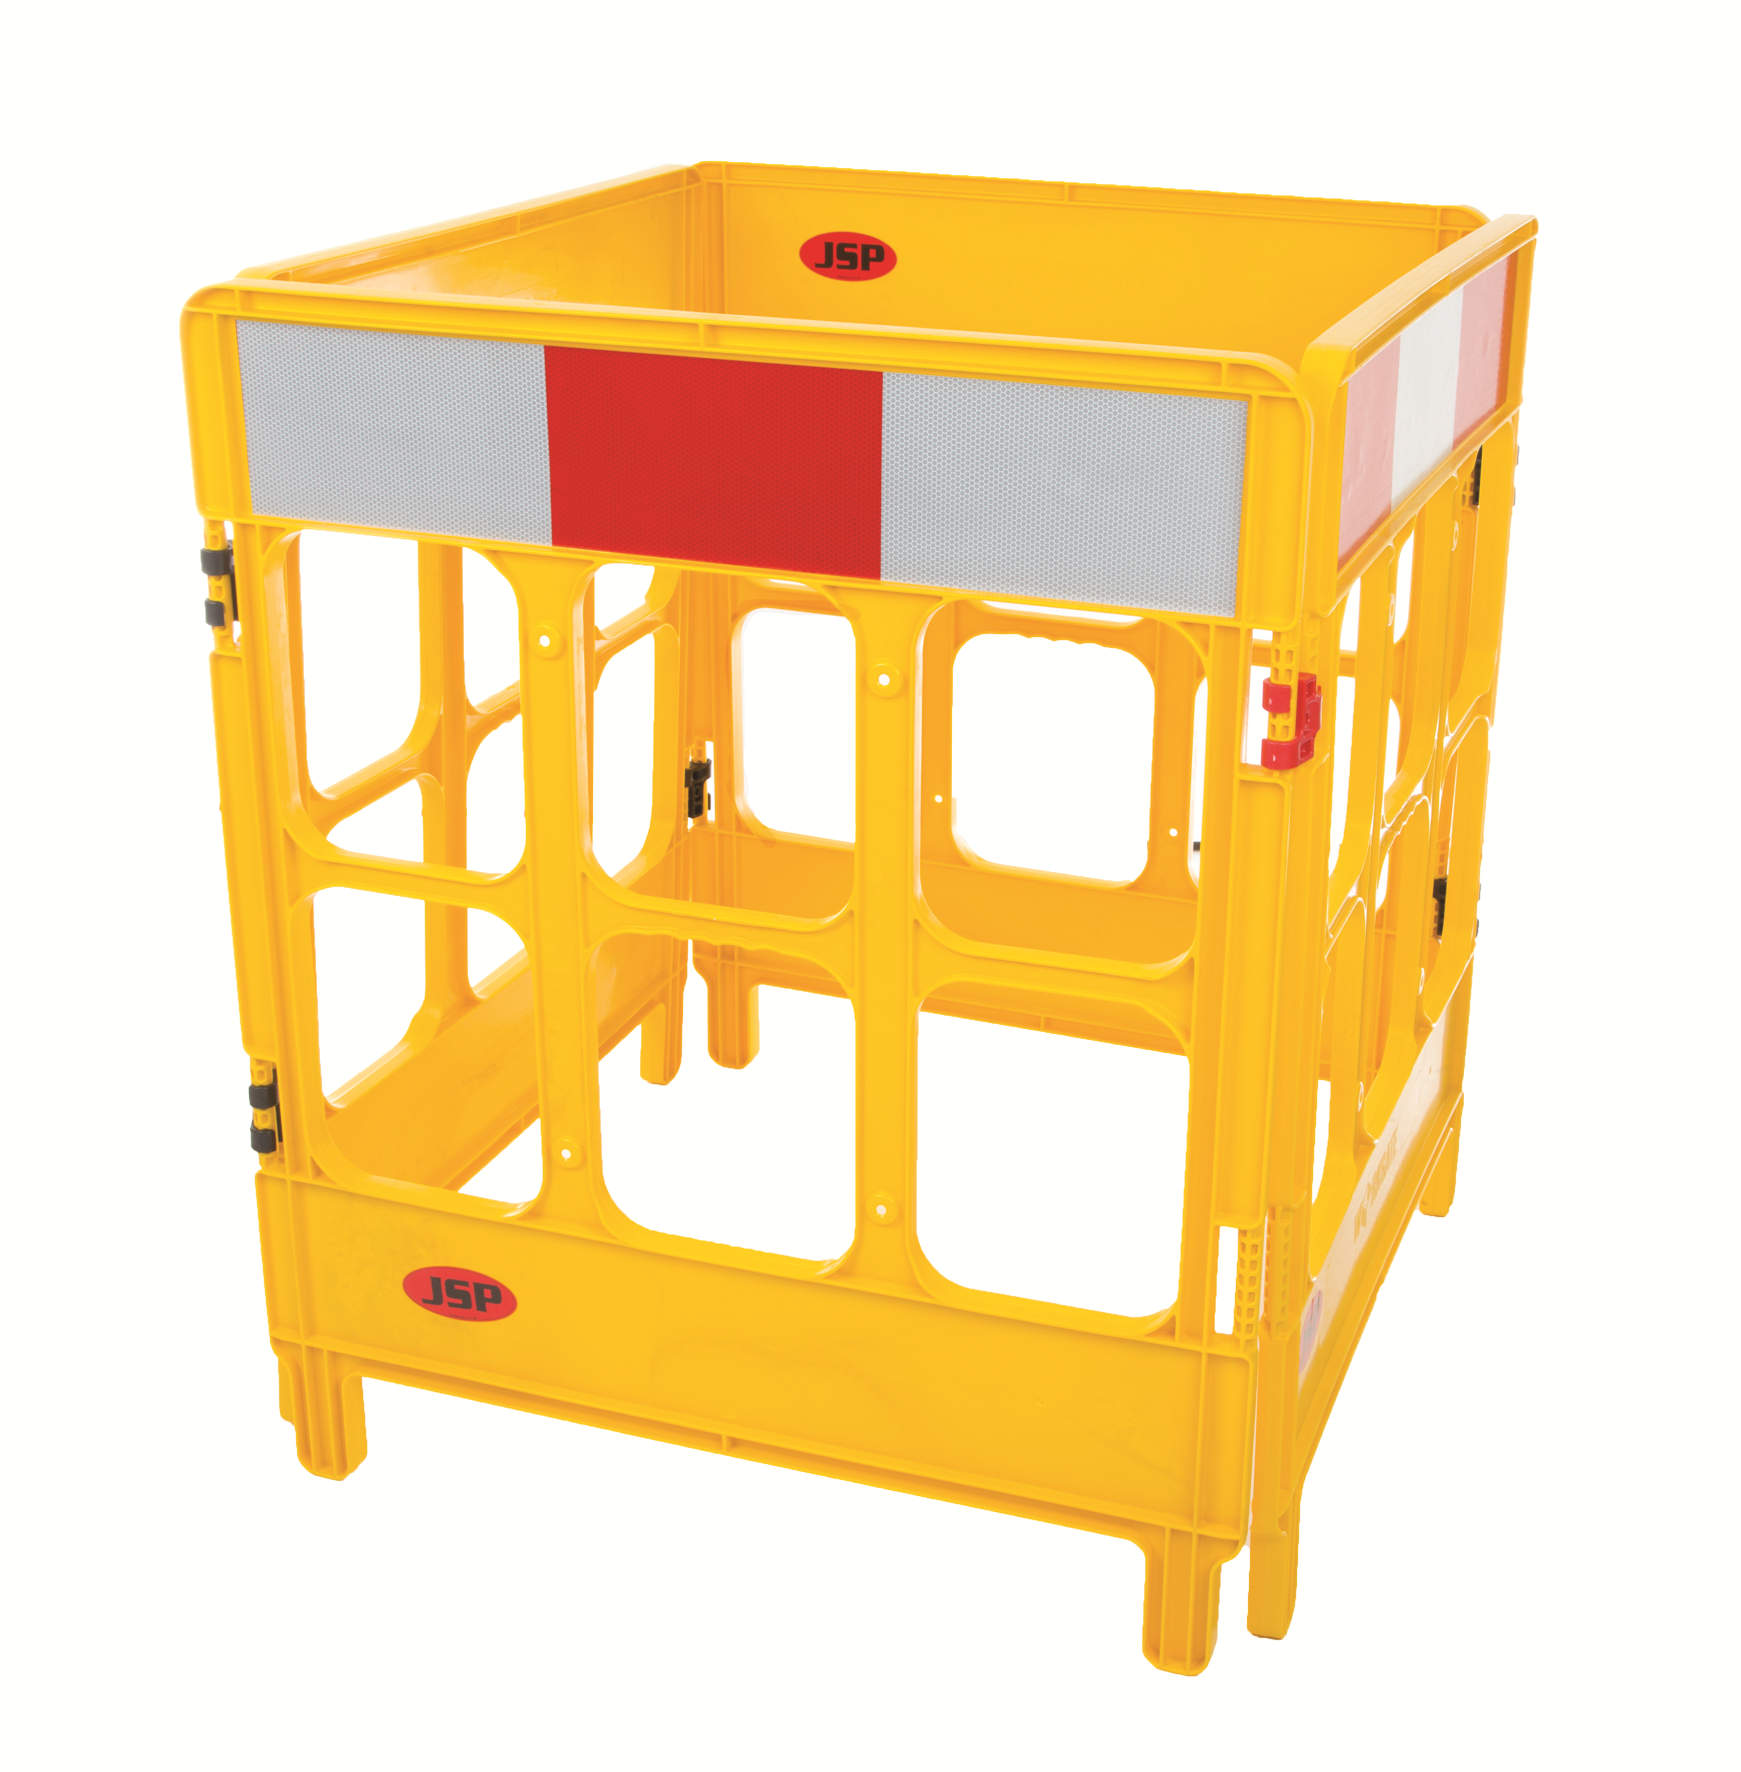 JSP 4-gate foldable polypropylene work barriers - CLEANING PRODUCTS